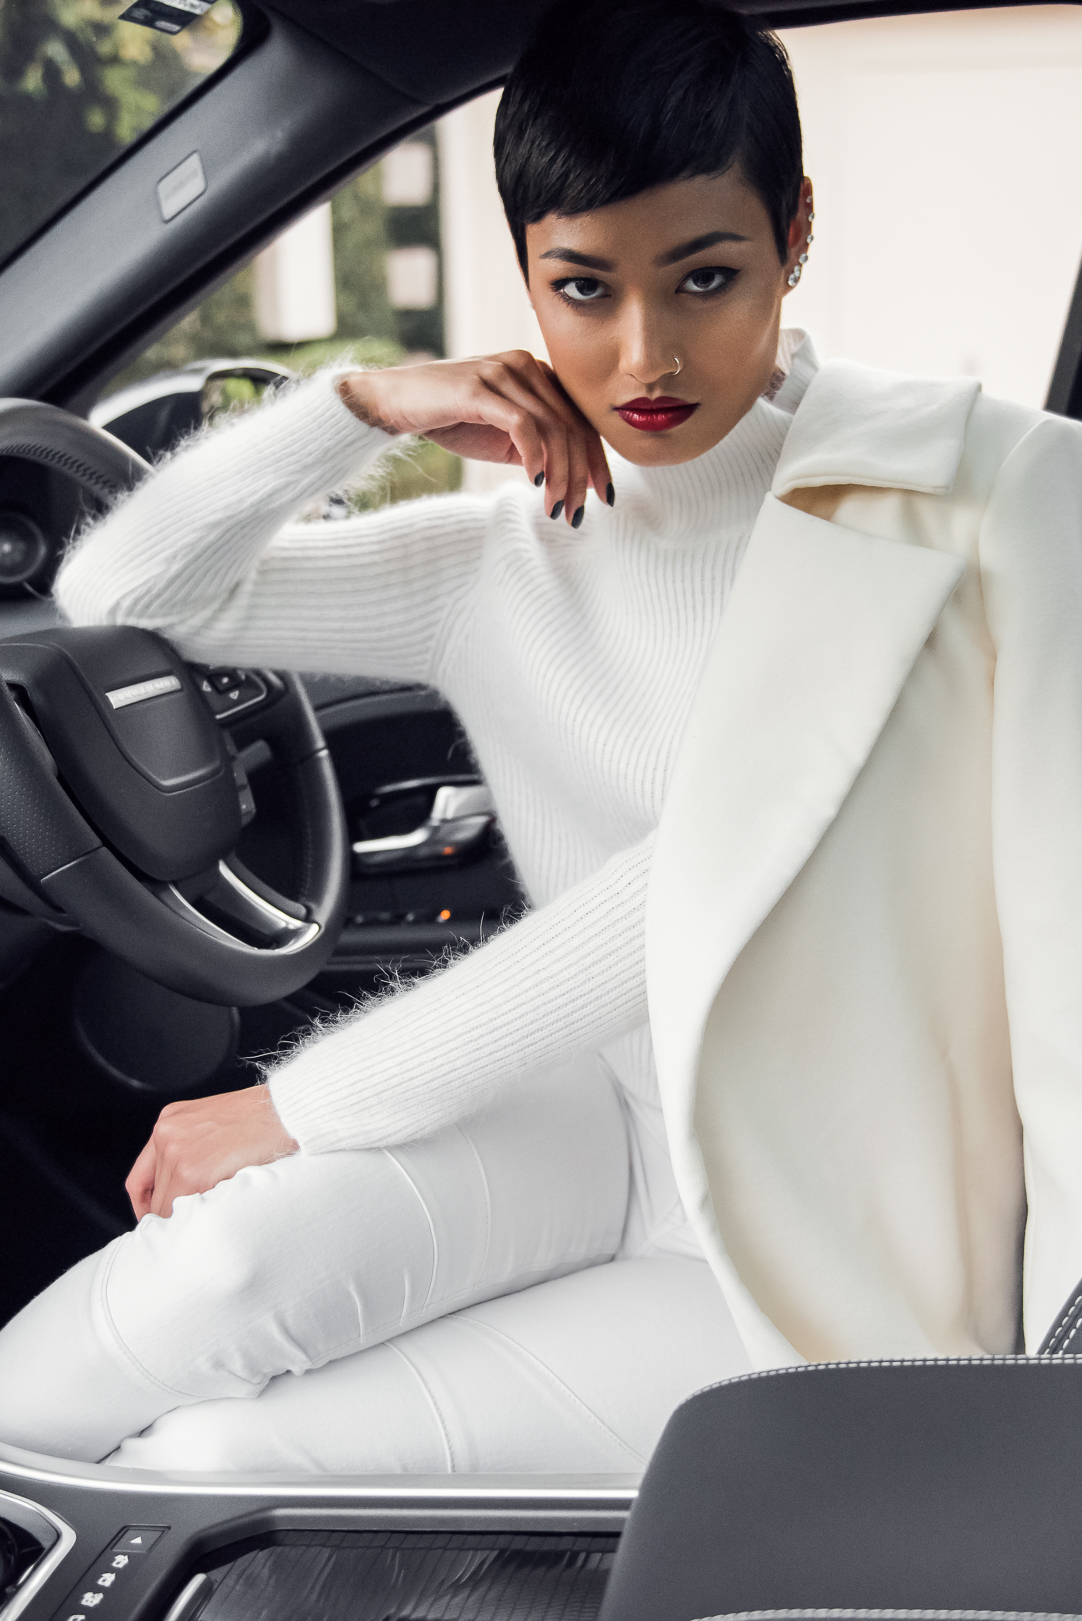 Micah-Gianneli-Top-Australian-Fashion-Blogger-Range-Rover-Evoque-RangeRover-Editorial-Campaign-Louboutin-So-Kate-All-White-Streetstyle-Vogue-Car-Review